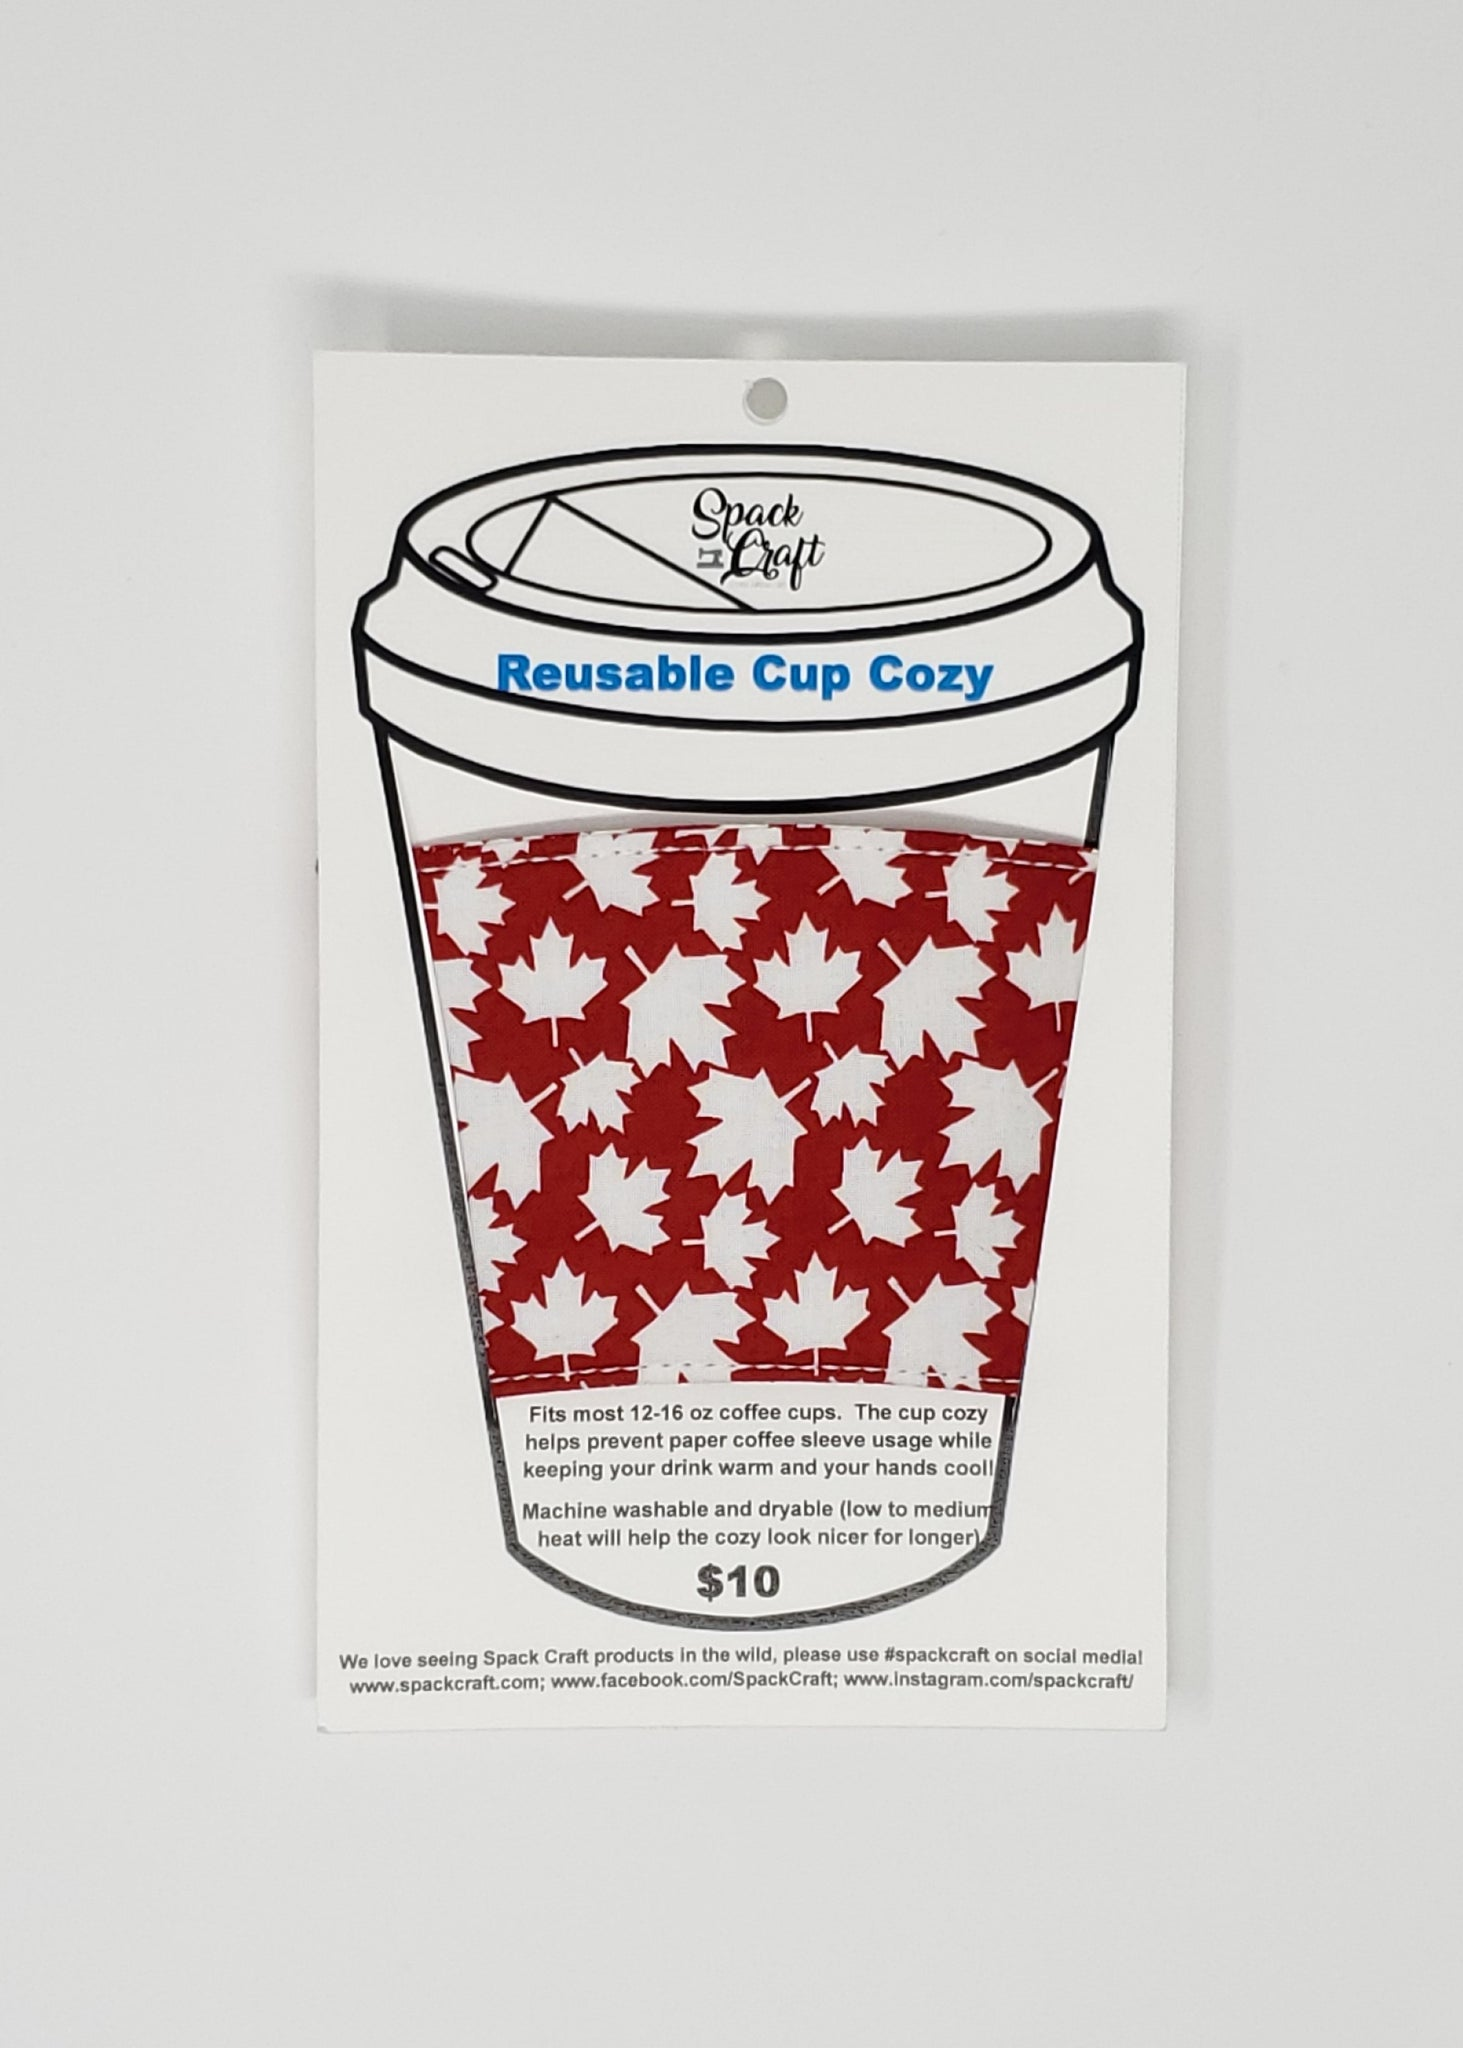 Reusable cup cozy - Canada - in packaging